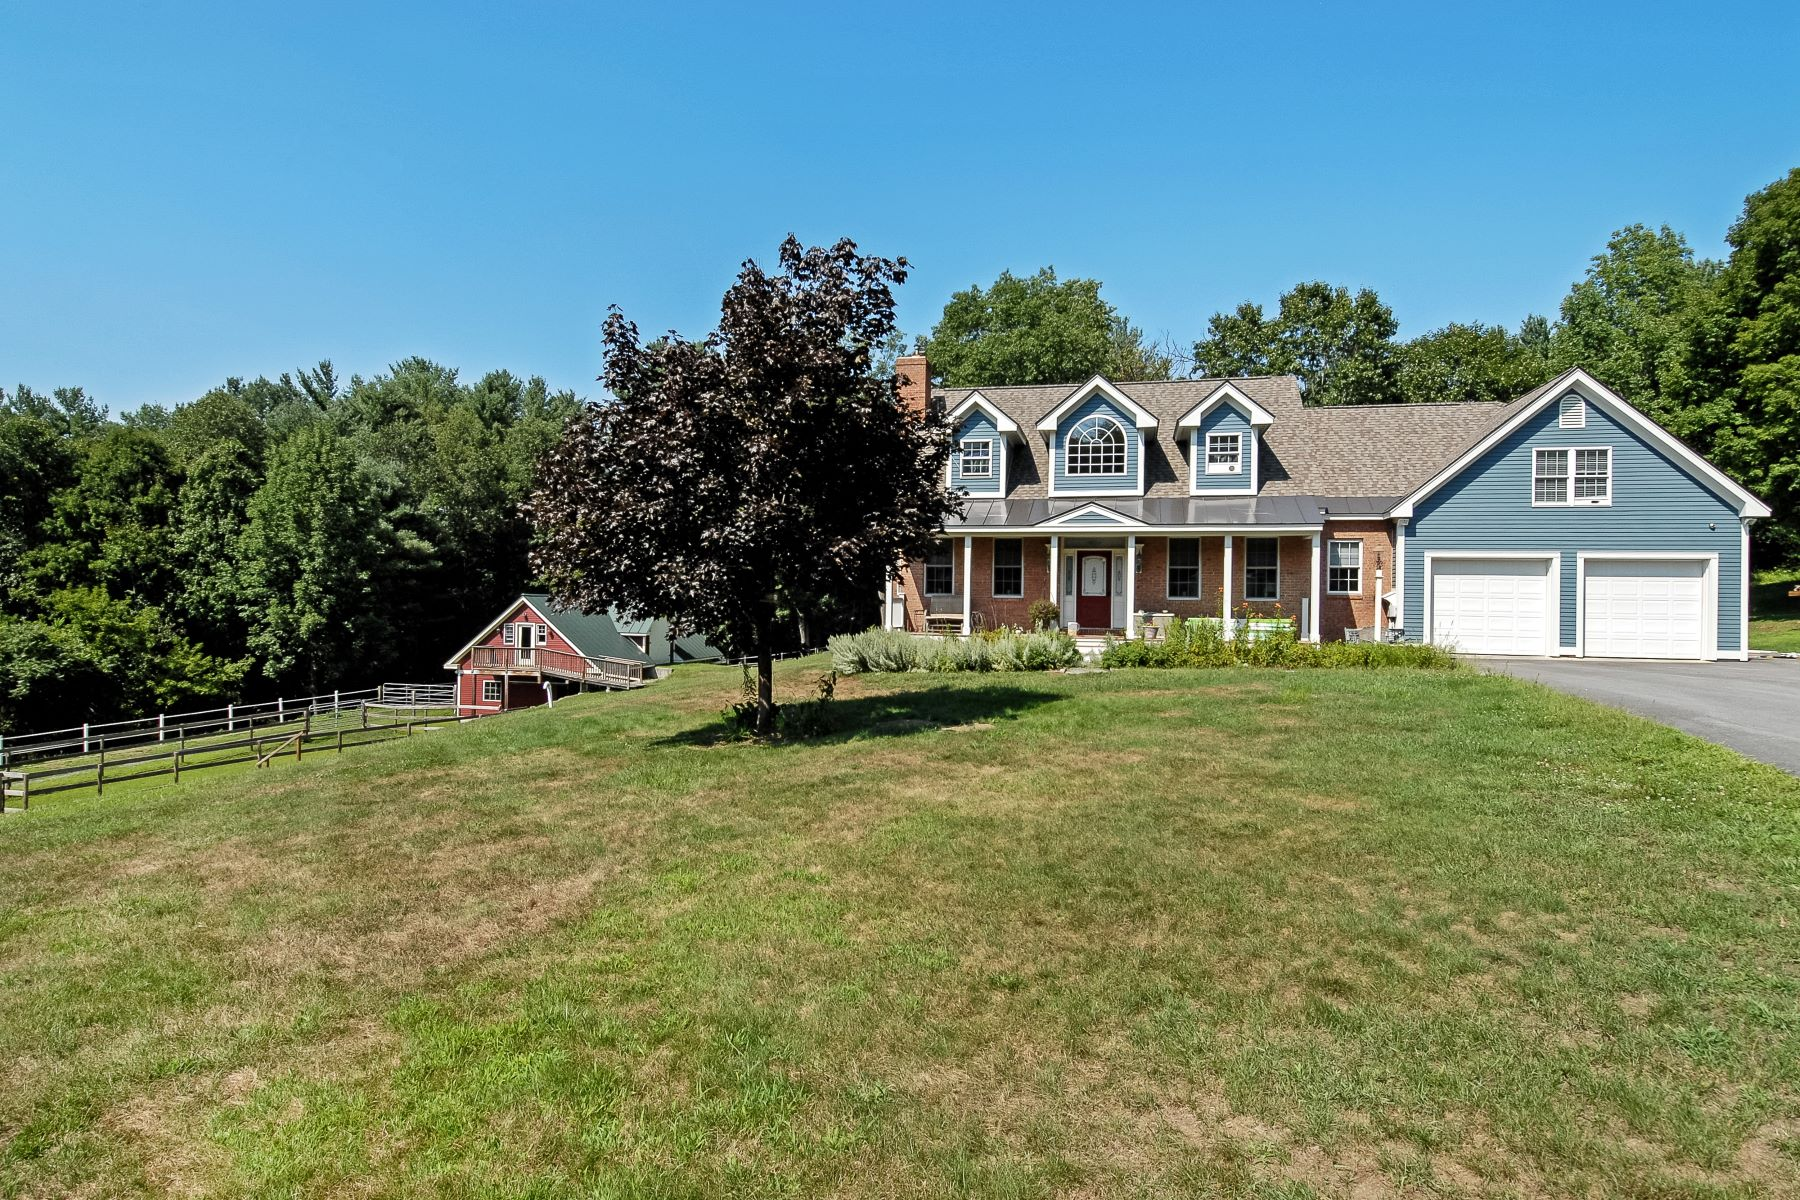 Single Family Home for Sale at 500 Freeman Rd, Plainfield Plainfield, New Hampshire, 03781 United States